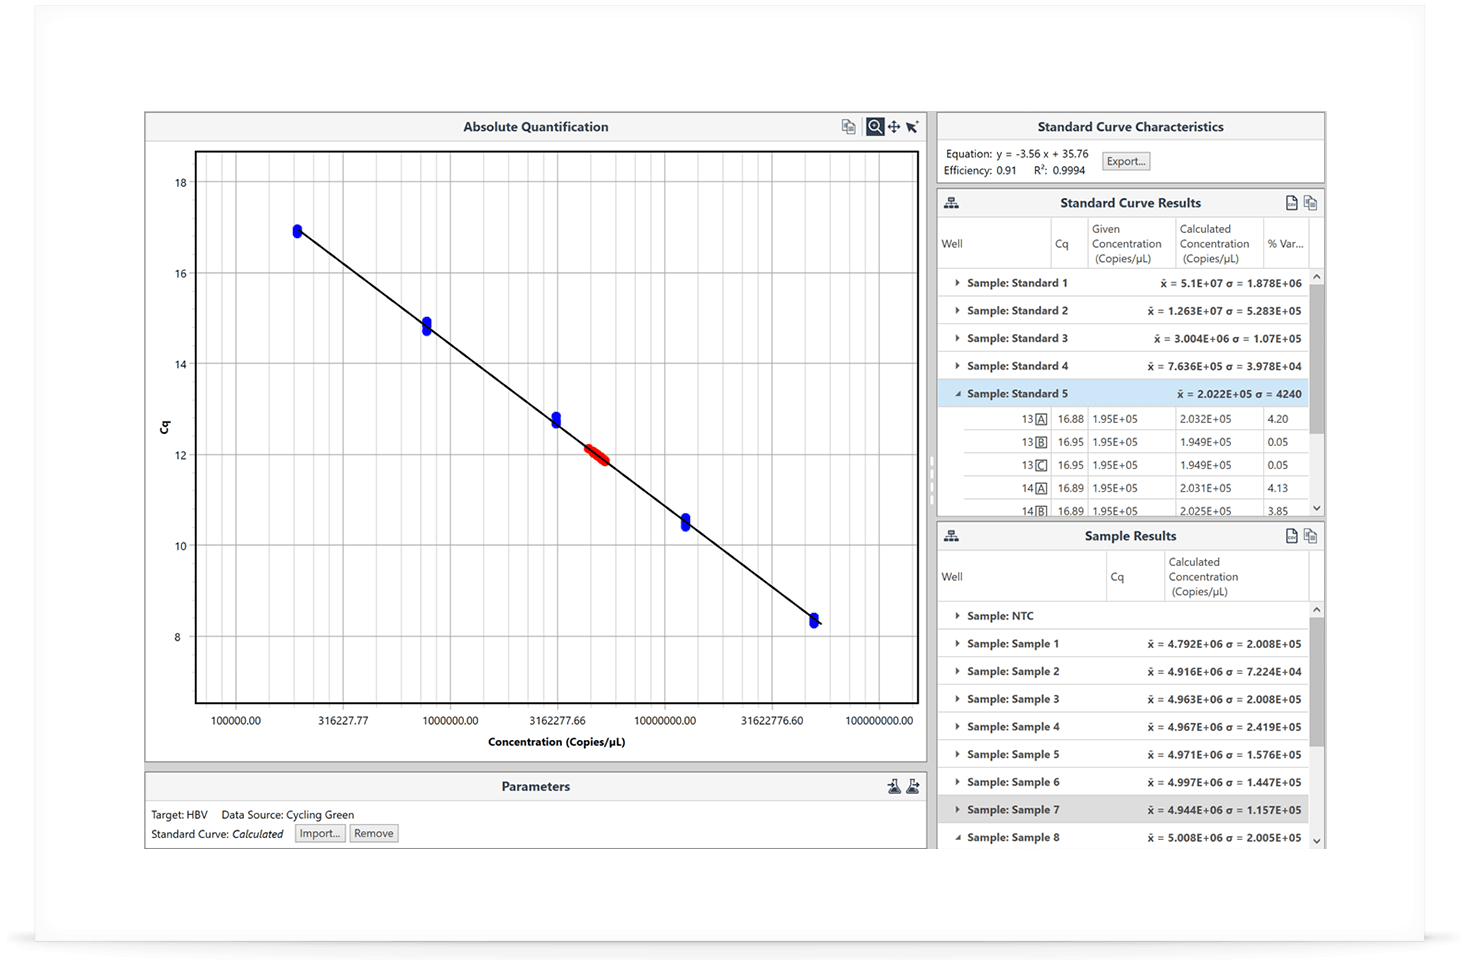 Mic qPCR Cycler Software - Standard Curve Analysis